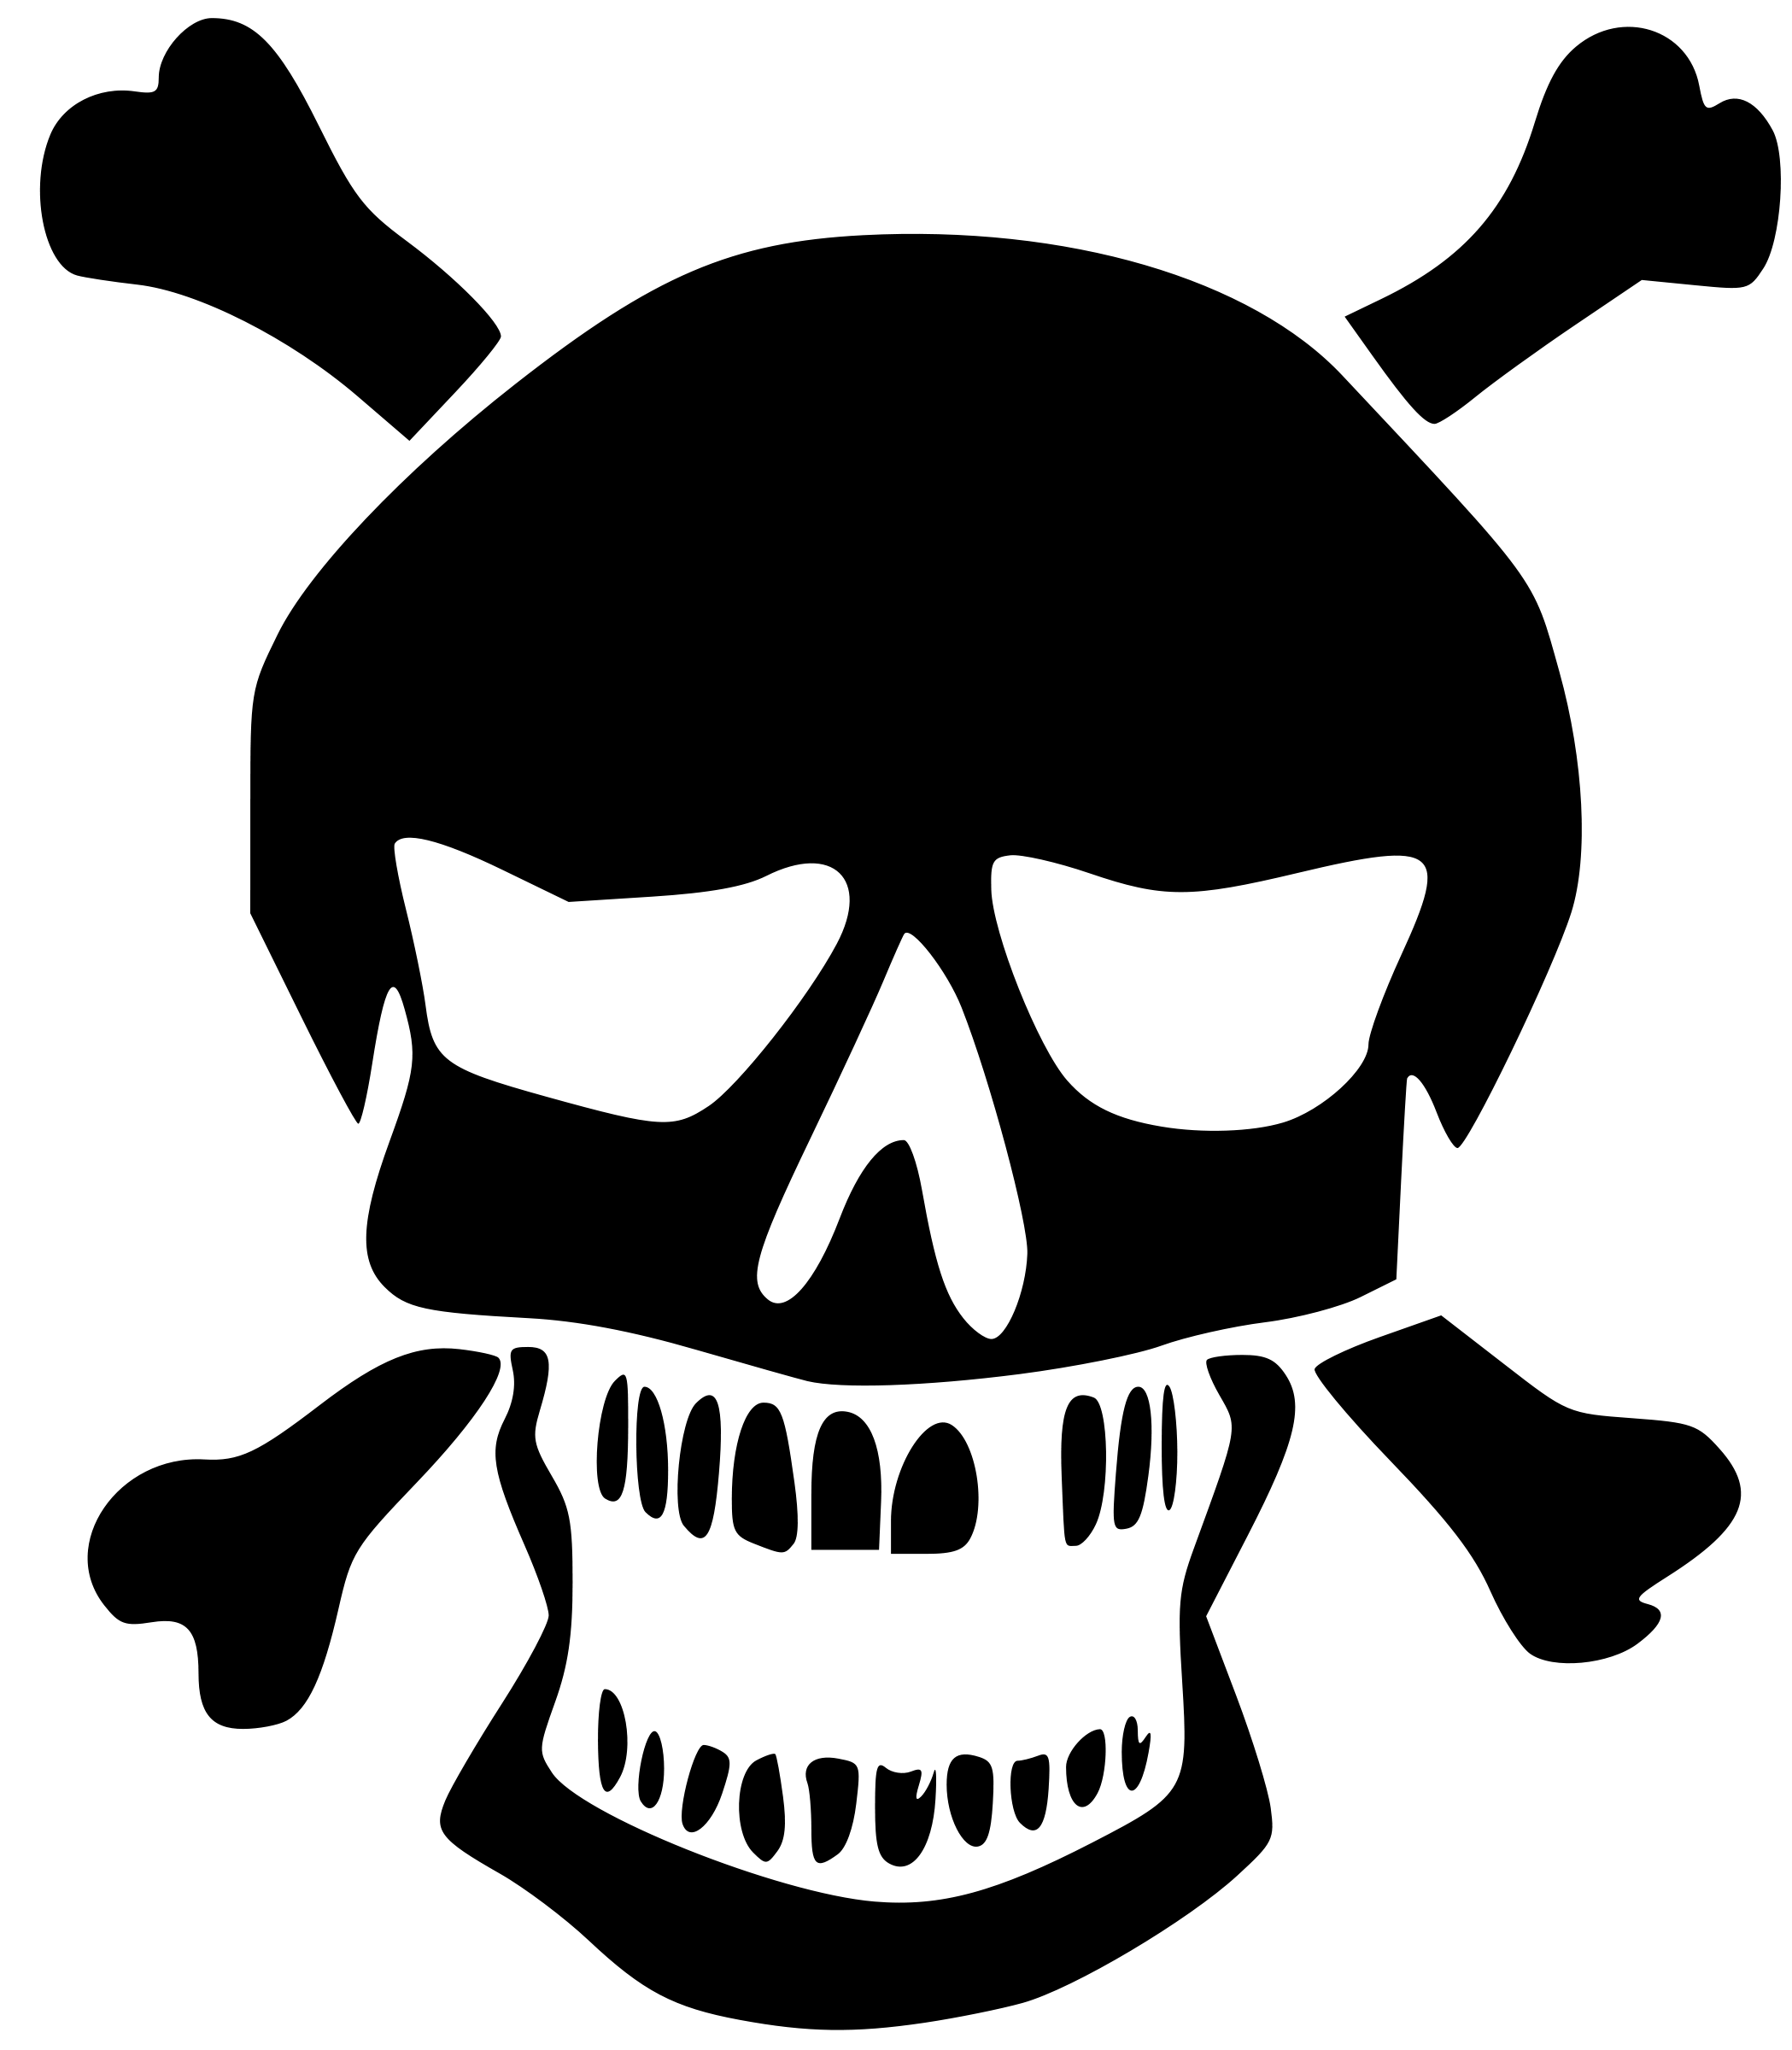 SIMPLE SKULL AND CROSSBONES CLIPART | Art Assets | Pinterest ...